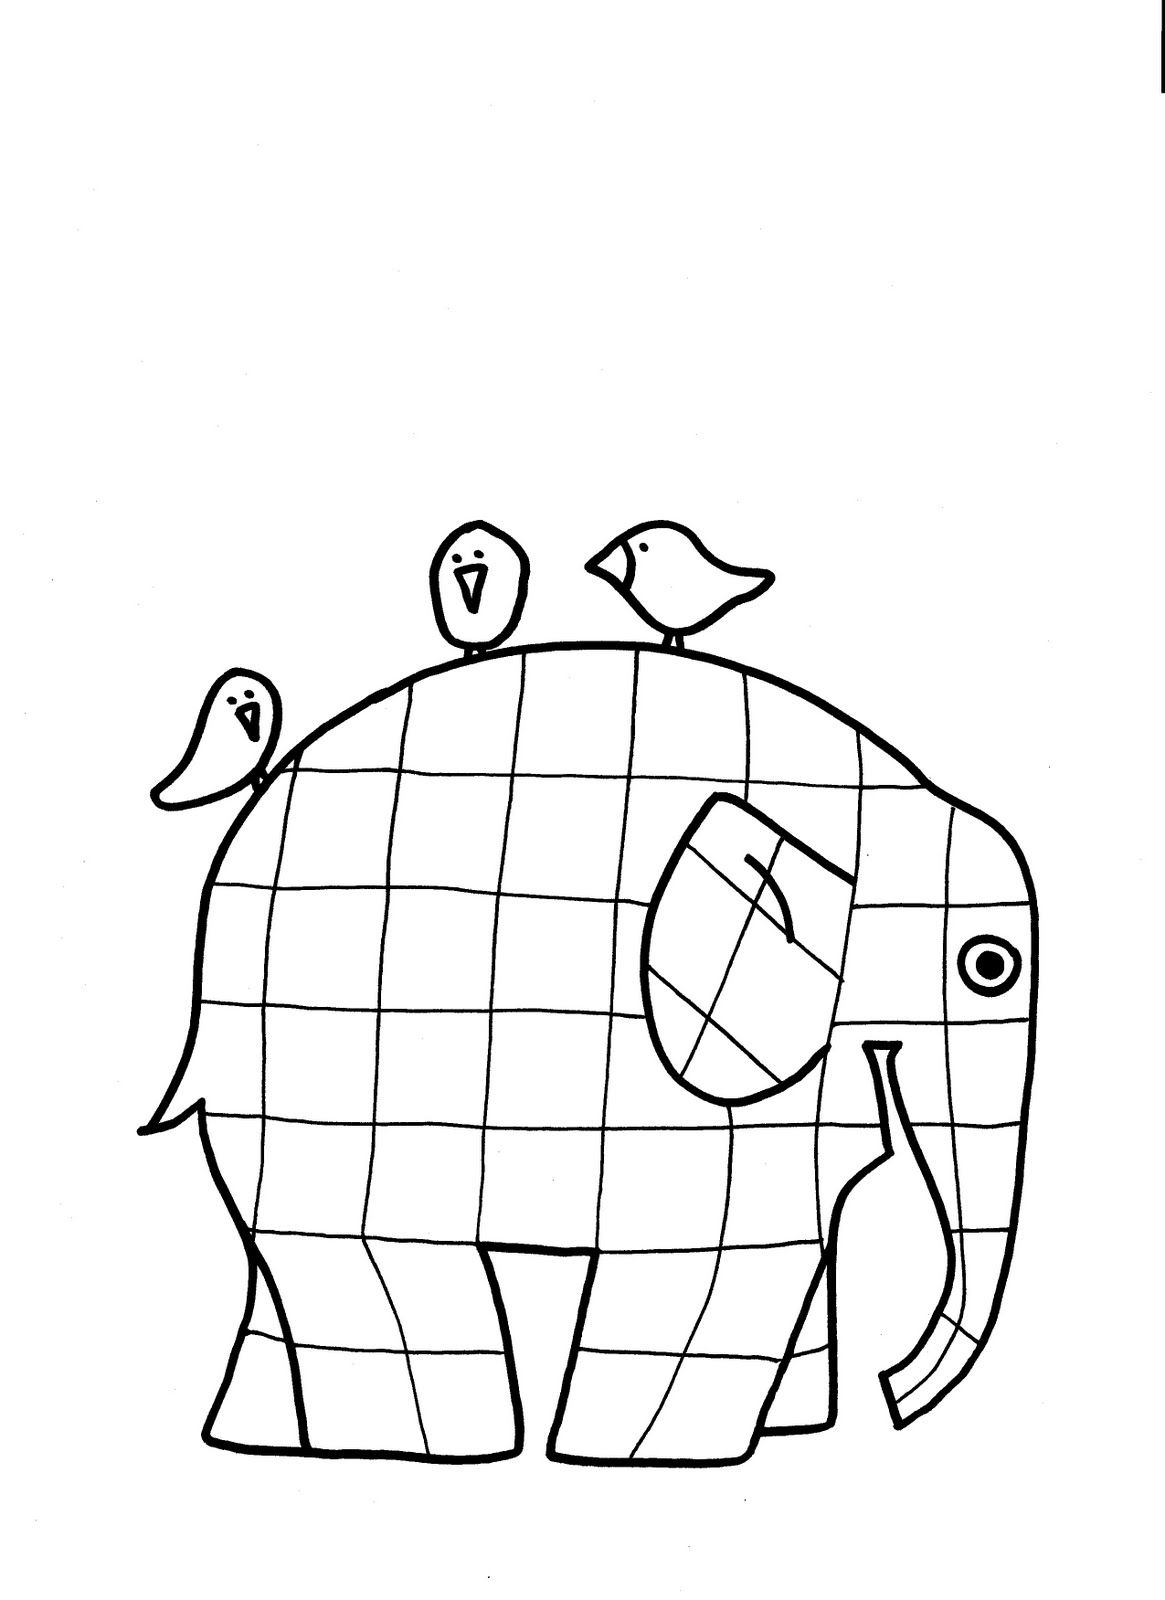 4 h coloring pages - Find This Pin And More On Kids Crafts 4 H By Shellybell305